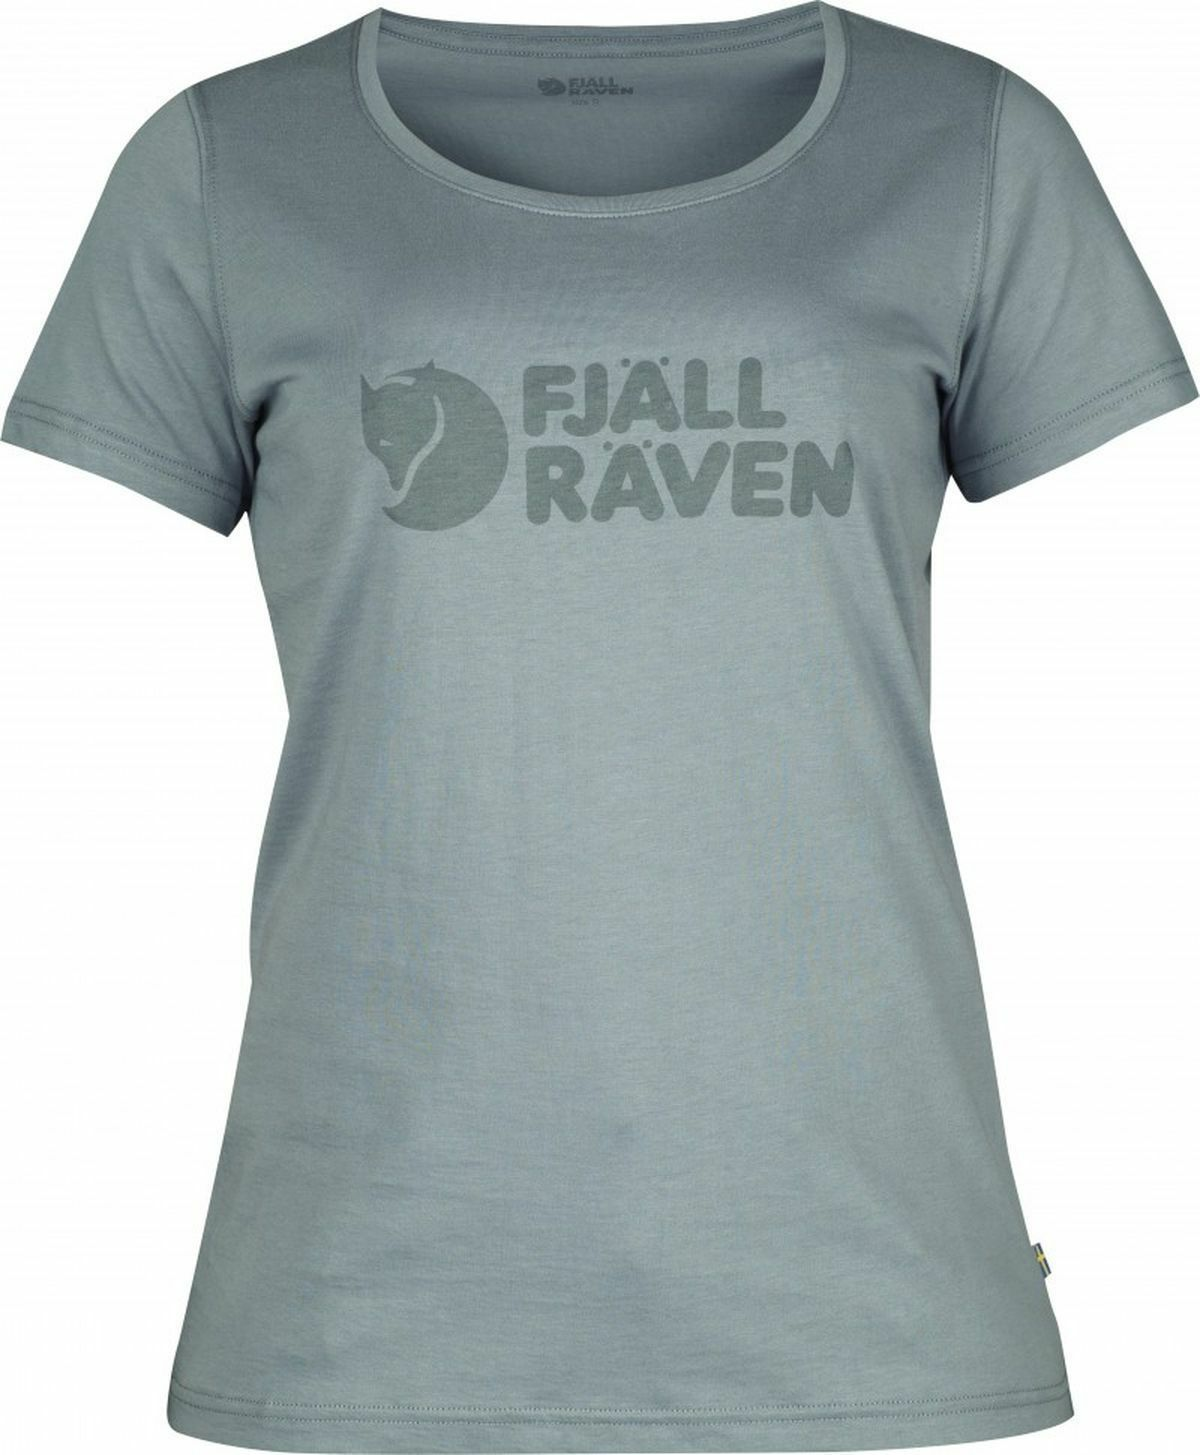 Western Räven Logo T-Shirt, Steel bluee, Size  L, 89572  online shopping sports